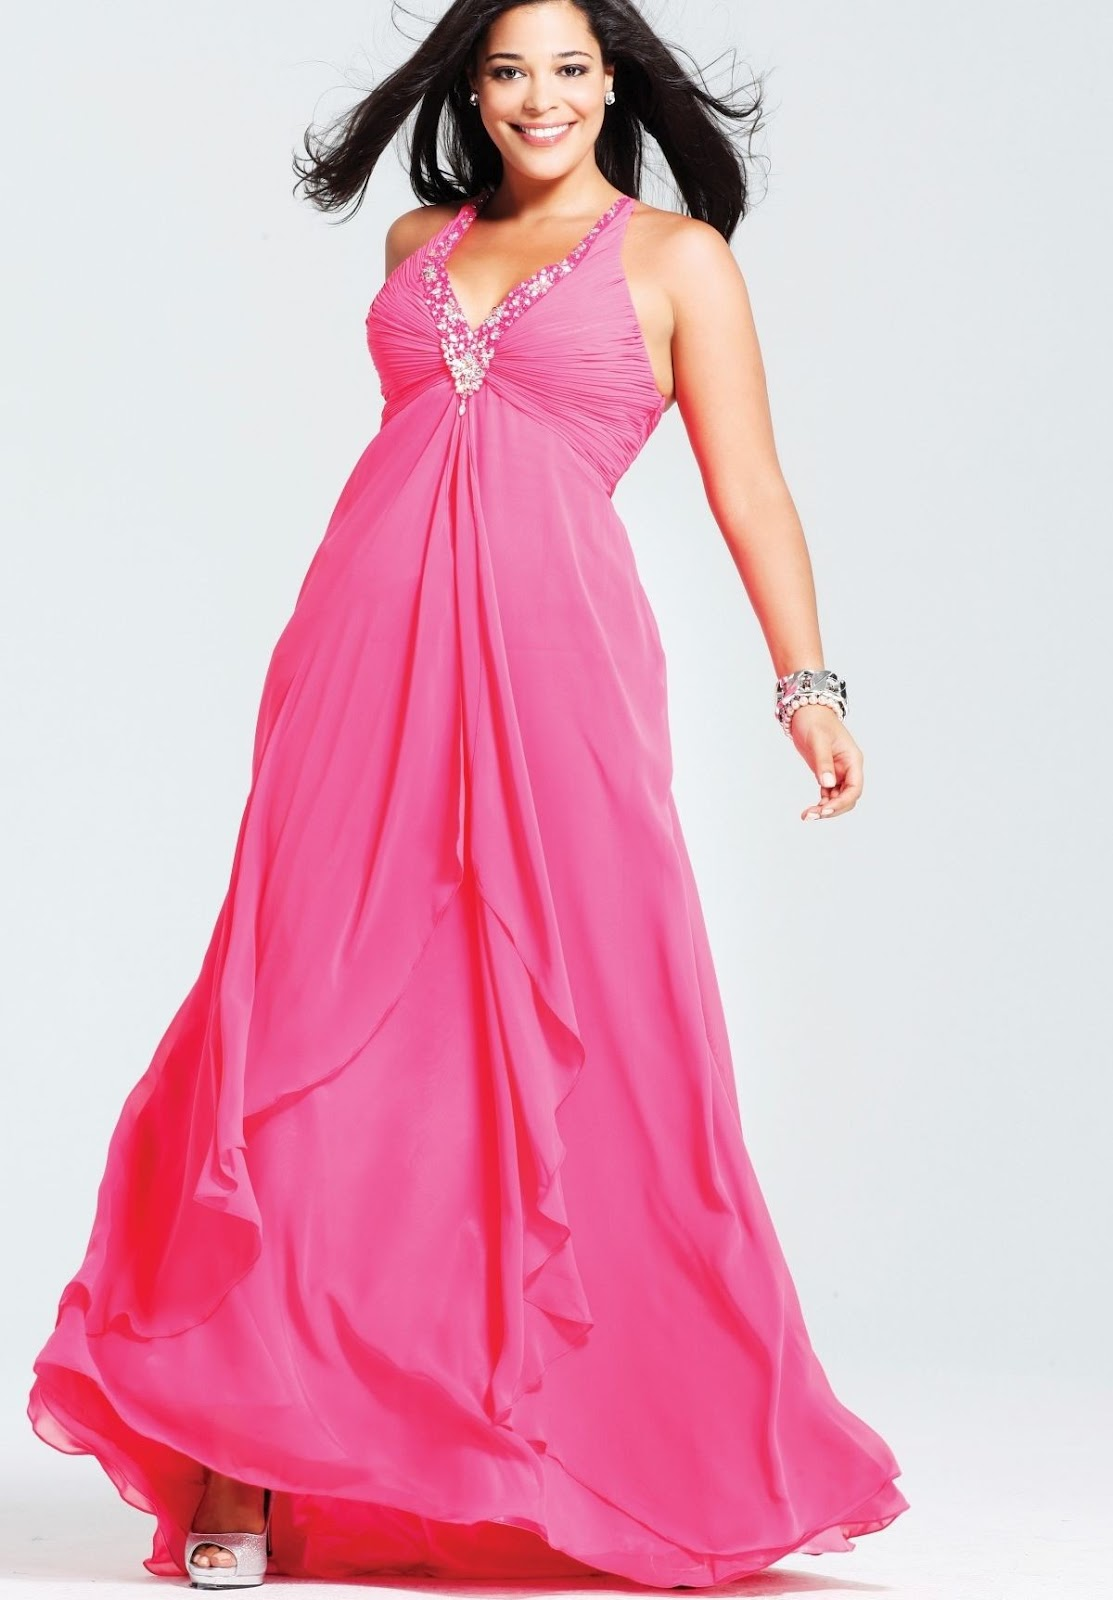 Plus Size Formal Dresses | Dressed Up Girl